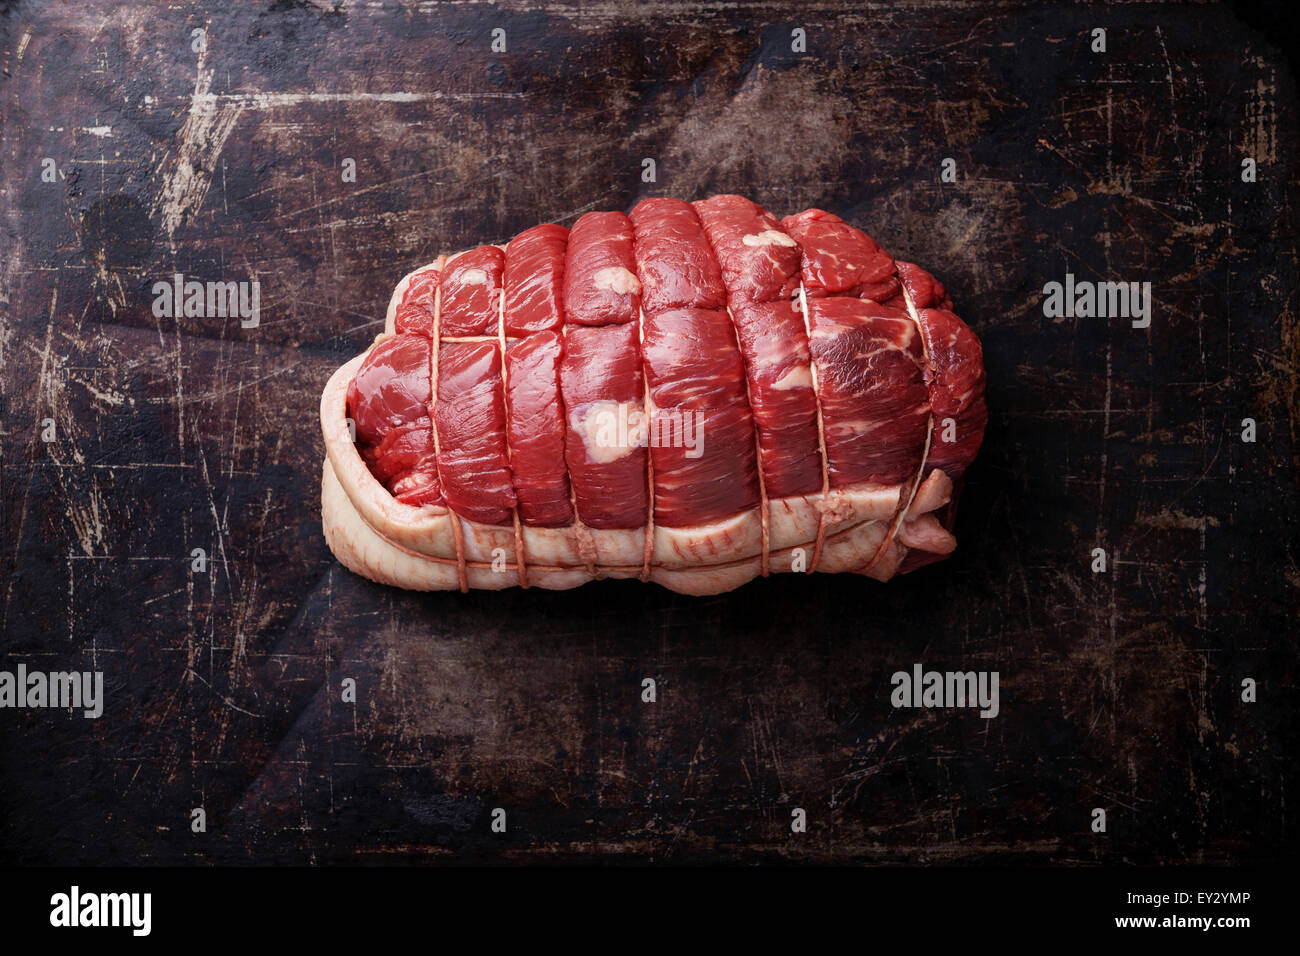 Rolled-up Roast beef meat on dark metal background - Stock Image